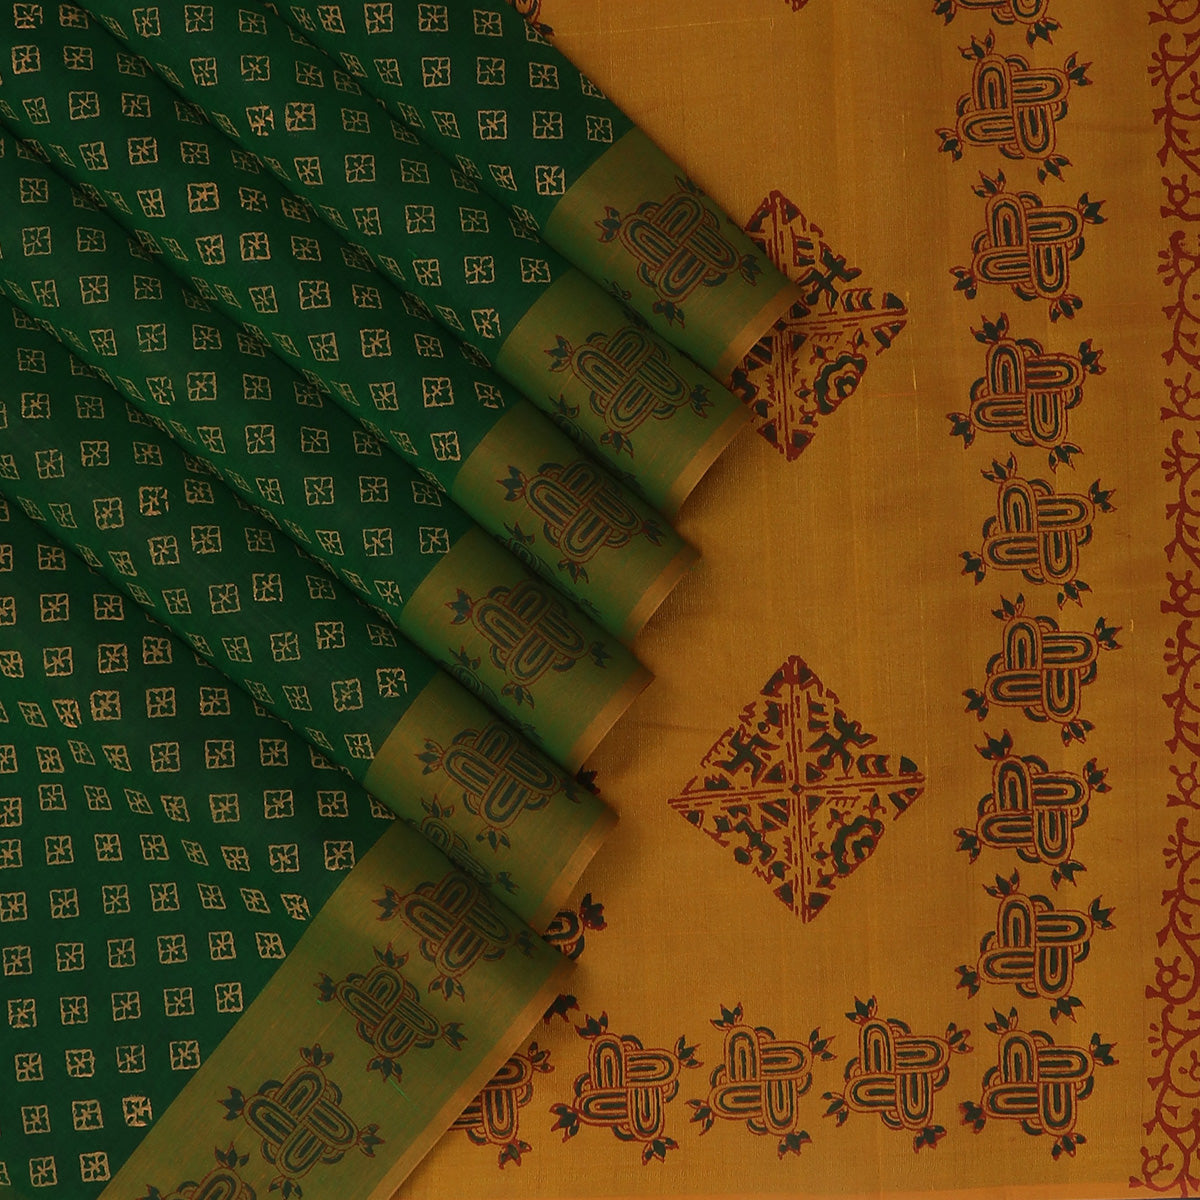 Printed Silk Cotton Saree Dark Green and Honey color with Simple Border